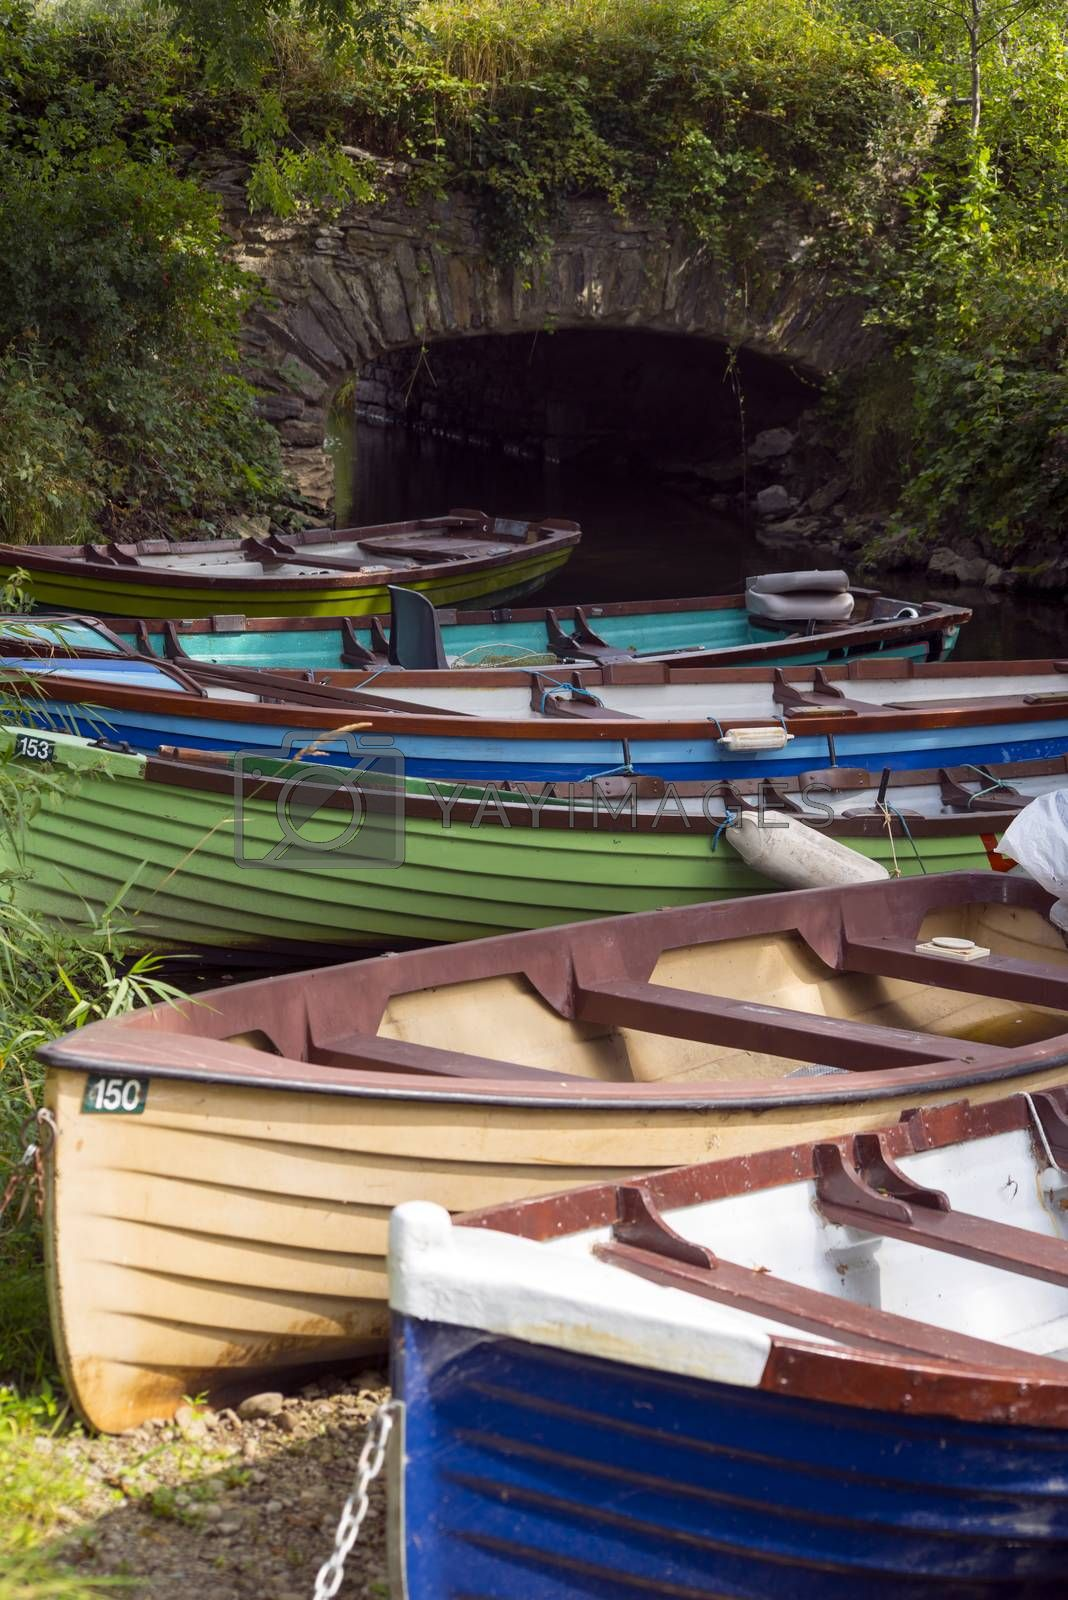 rowing boats moored at ross castle bridge by morrbyte